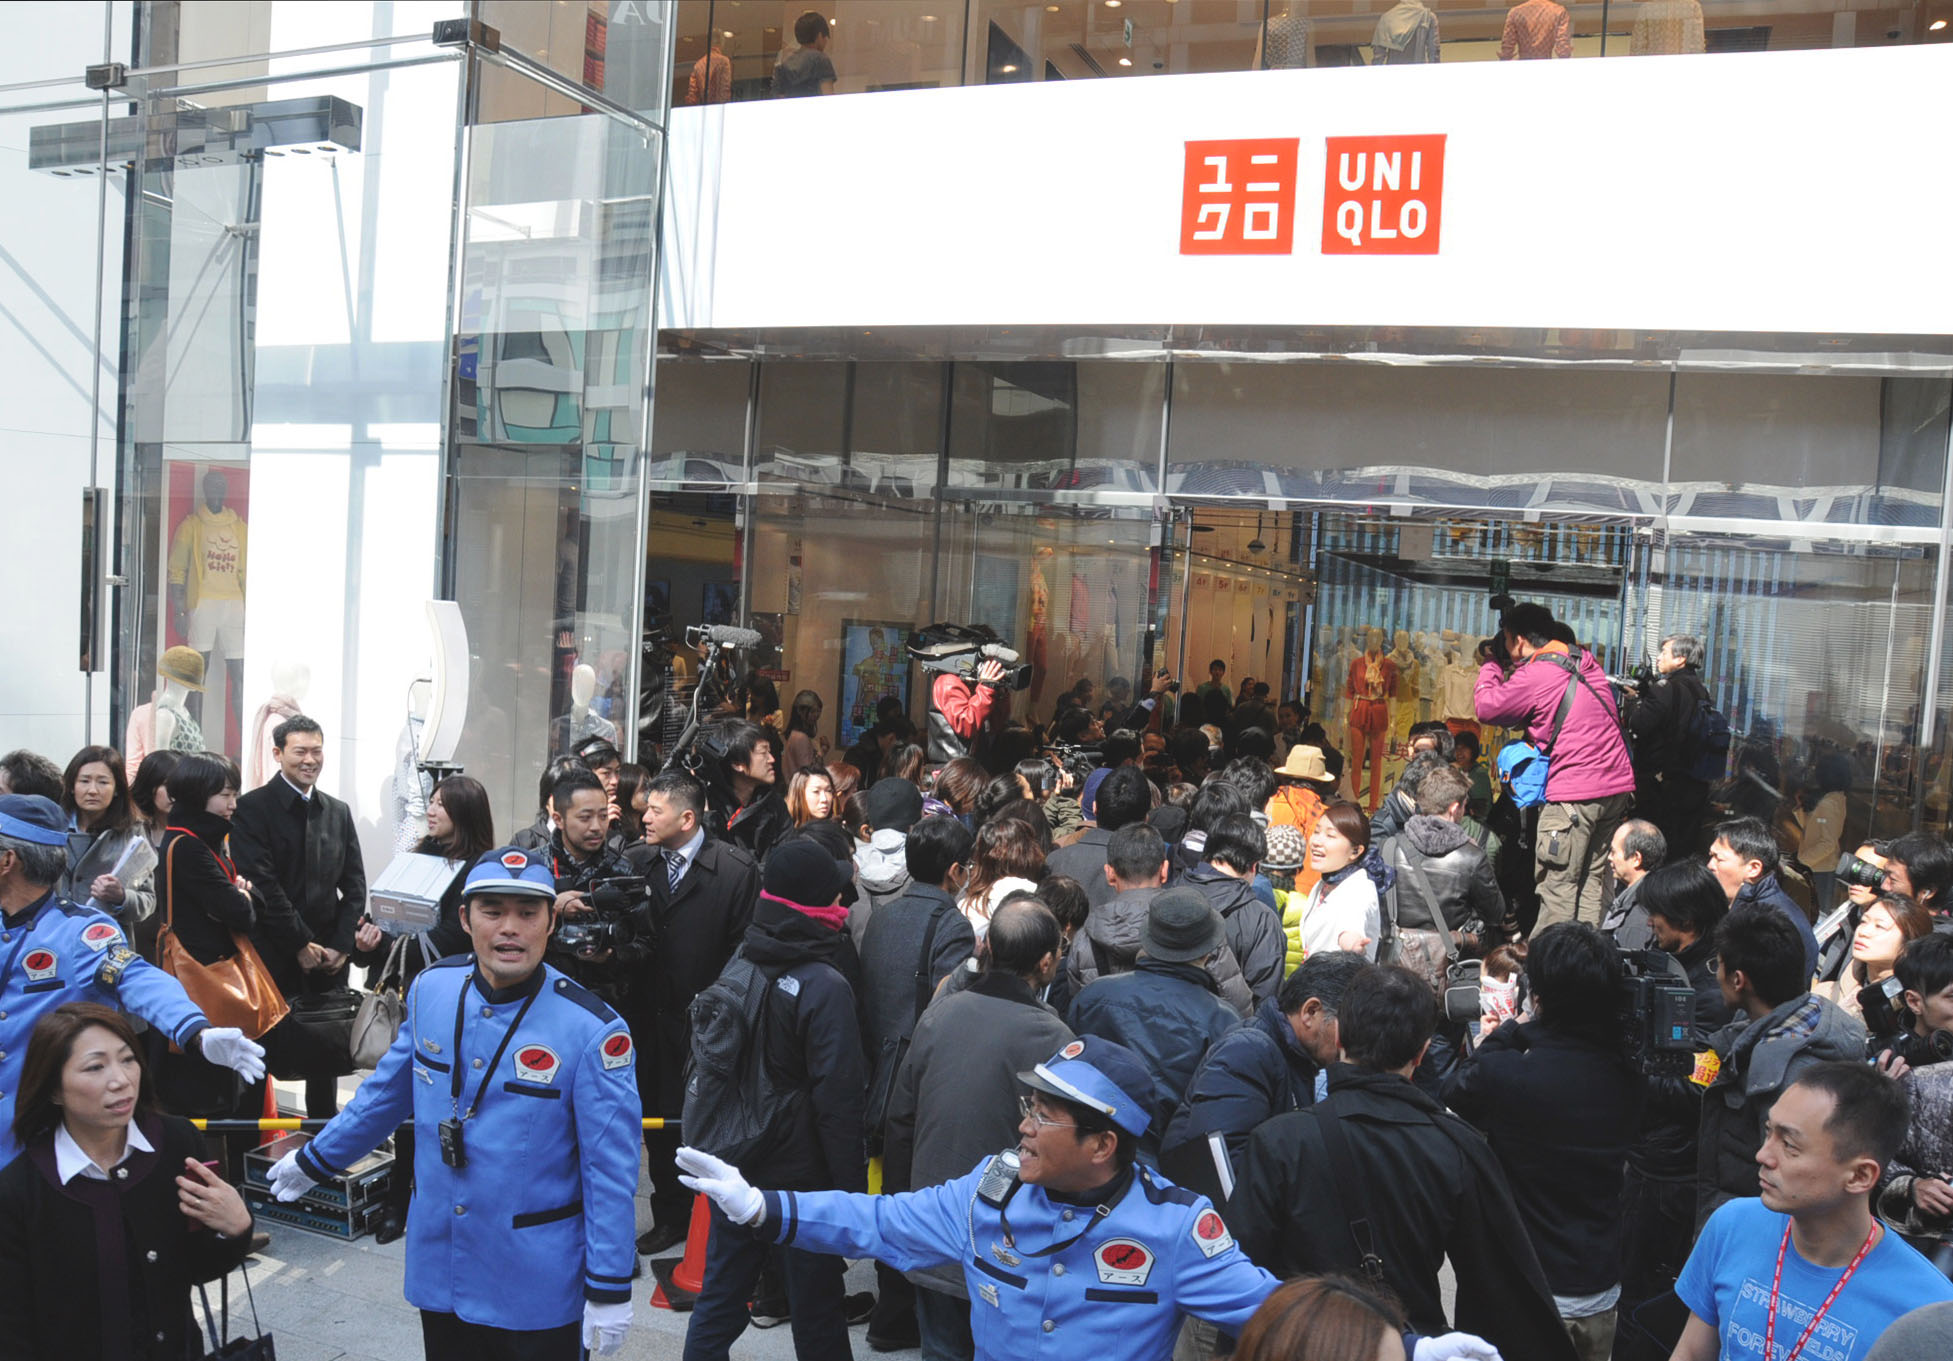 Till you drop: Shoppers enter the Uniqlo clothing chain's flagship store in Tokyo's Ginza district after it opened Friday morning. | SATOKO KAWASAKI